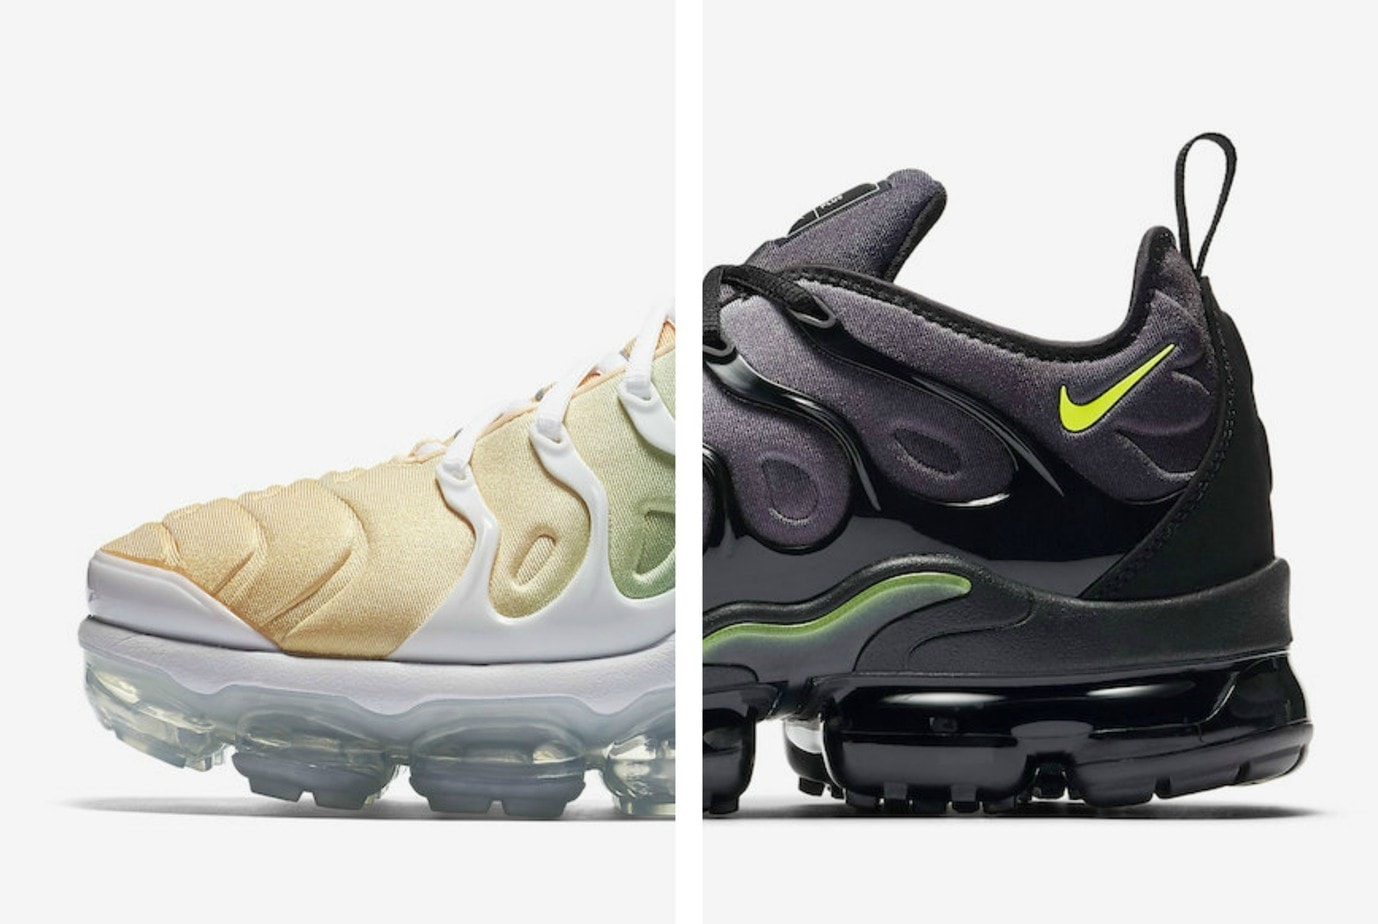 3cbc73f55f7 The new Nike Air Vapormax Plus first release in January of this year. The  fresh silhouette was a surprise hit